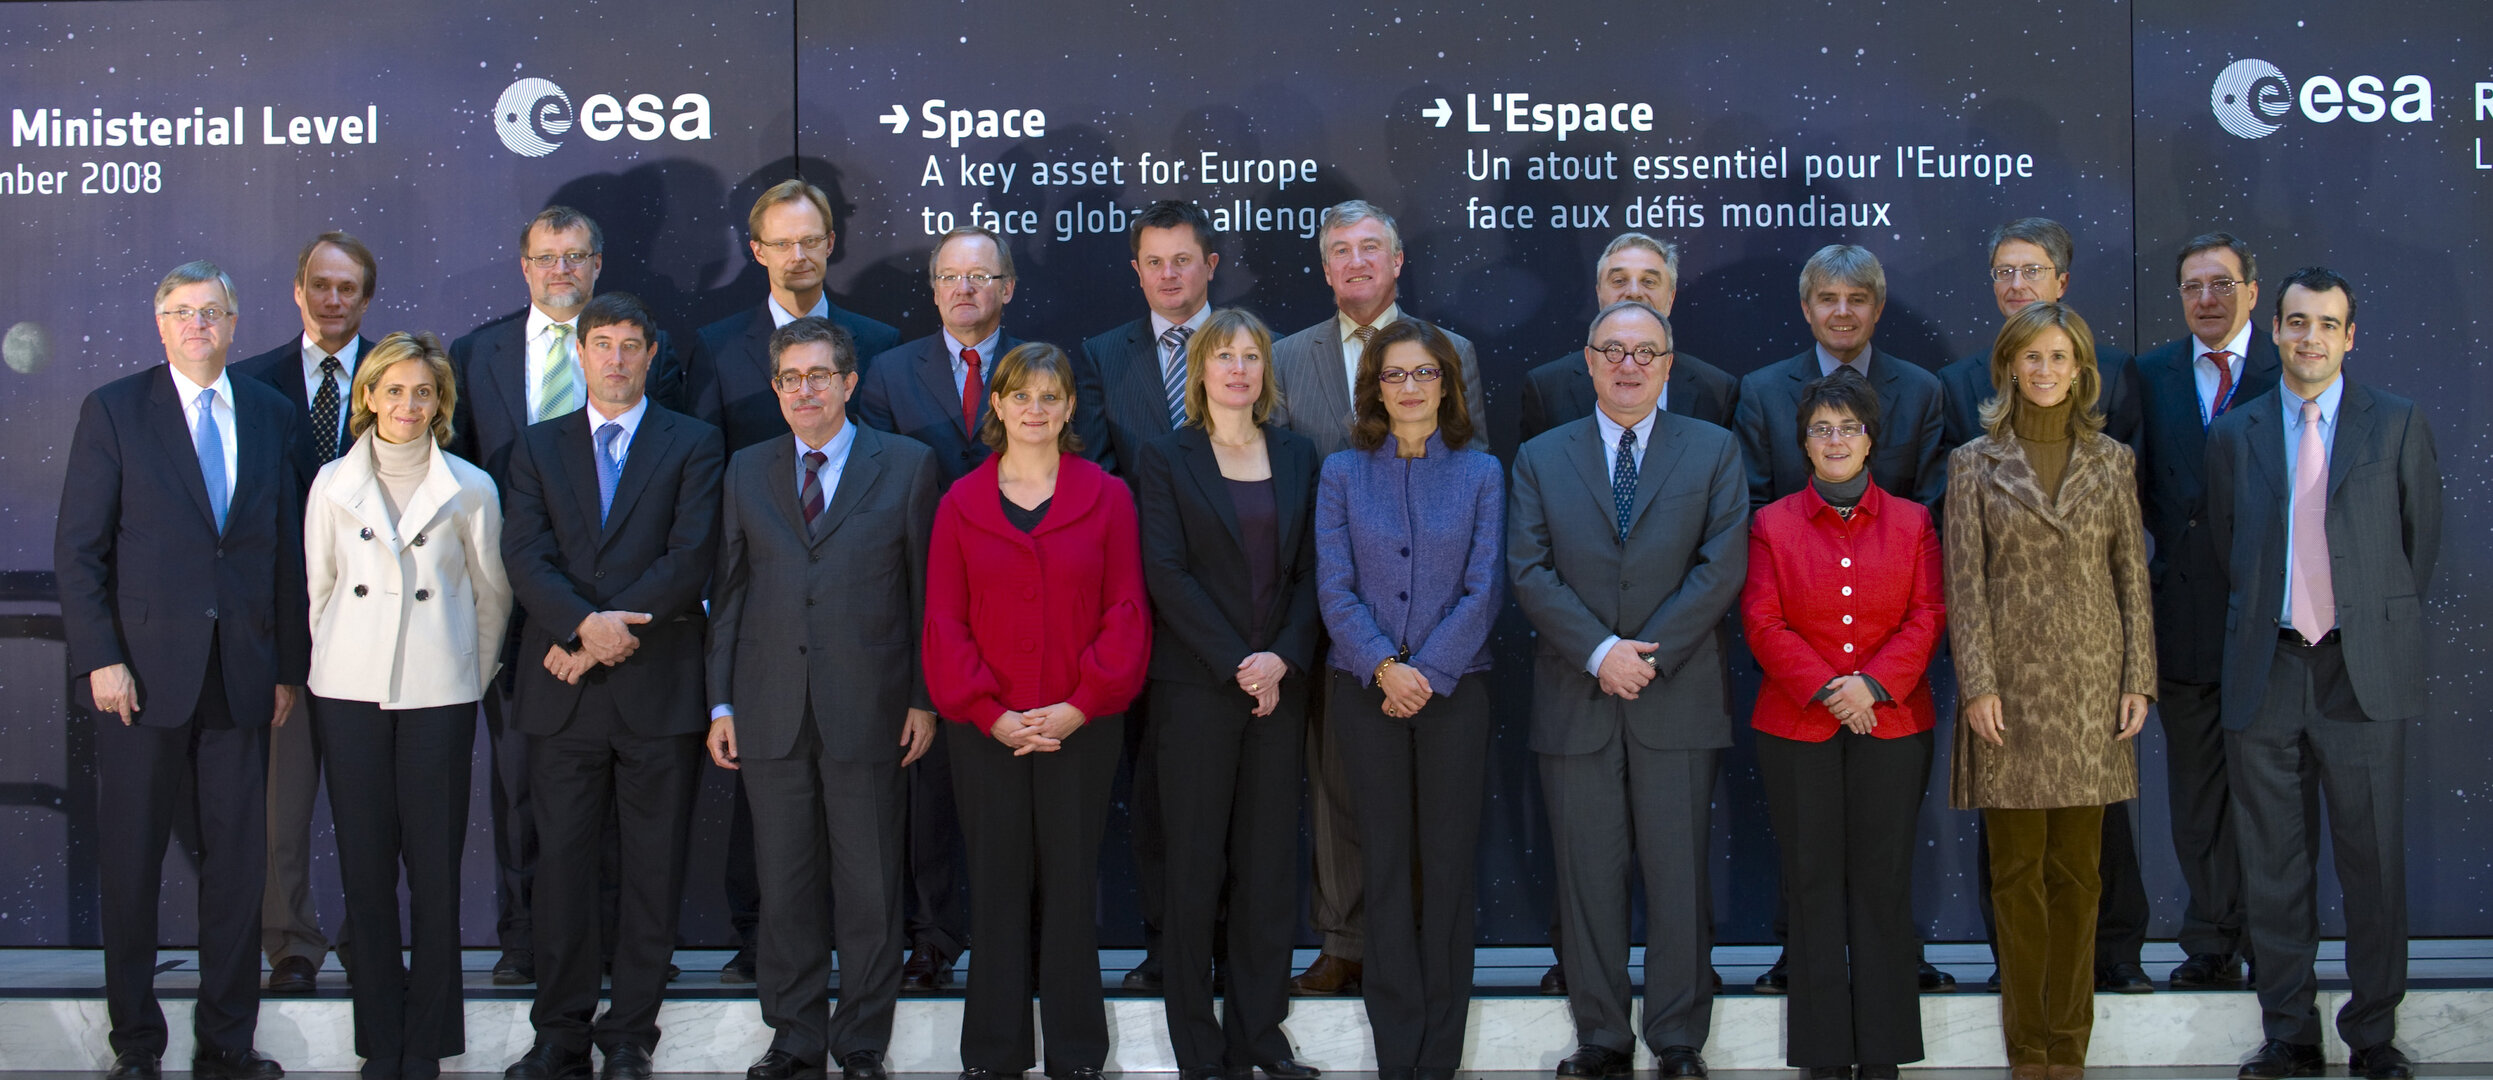 ESA Council Meeting at Ministerial Level 2008